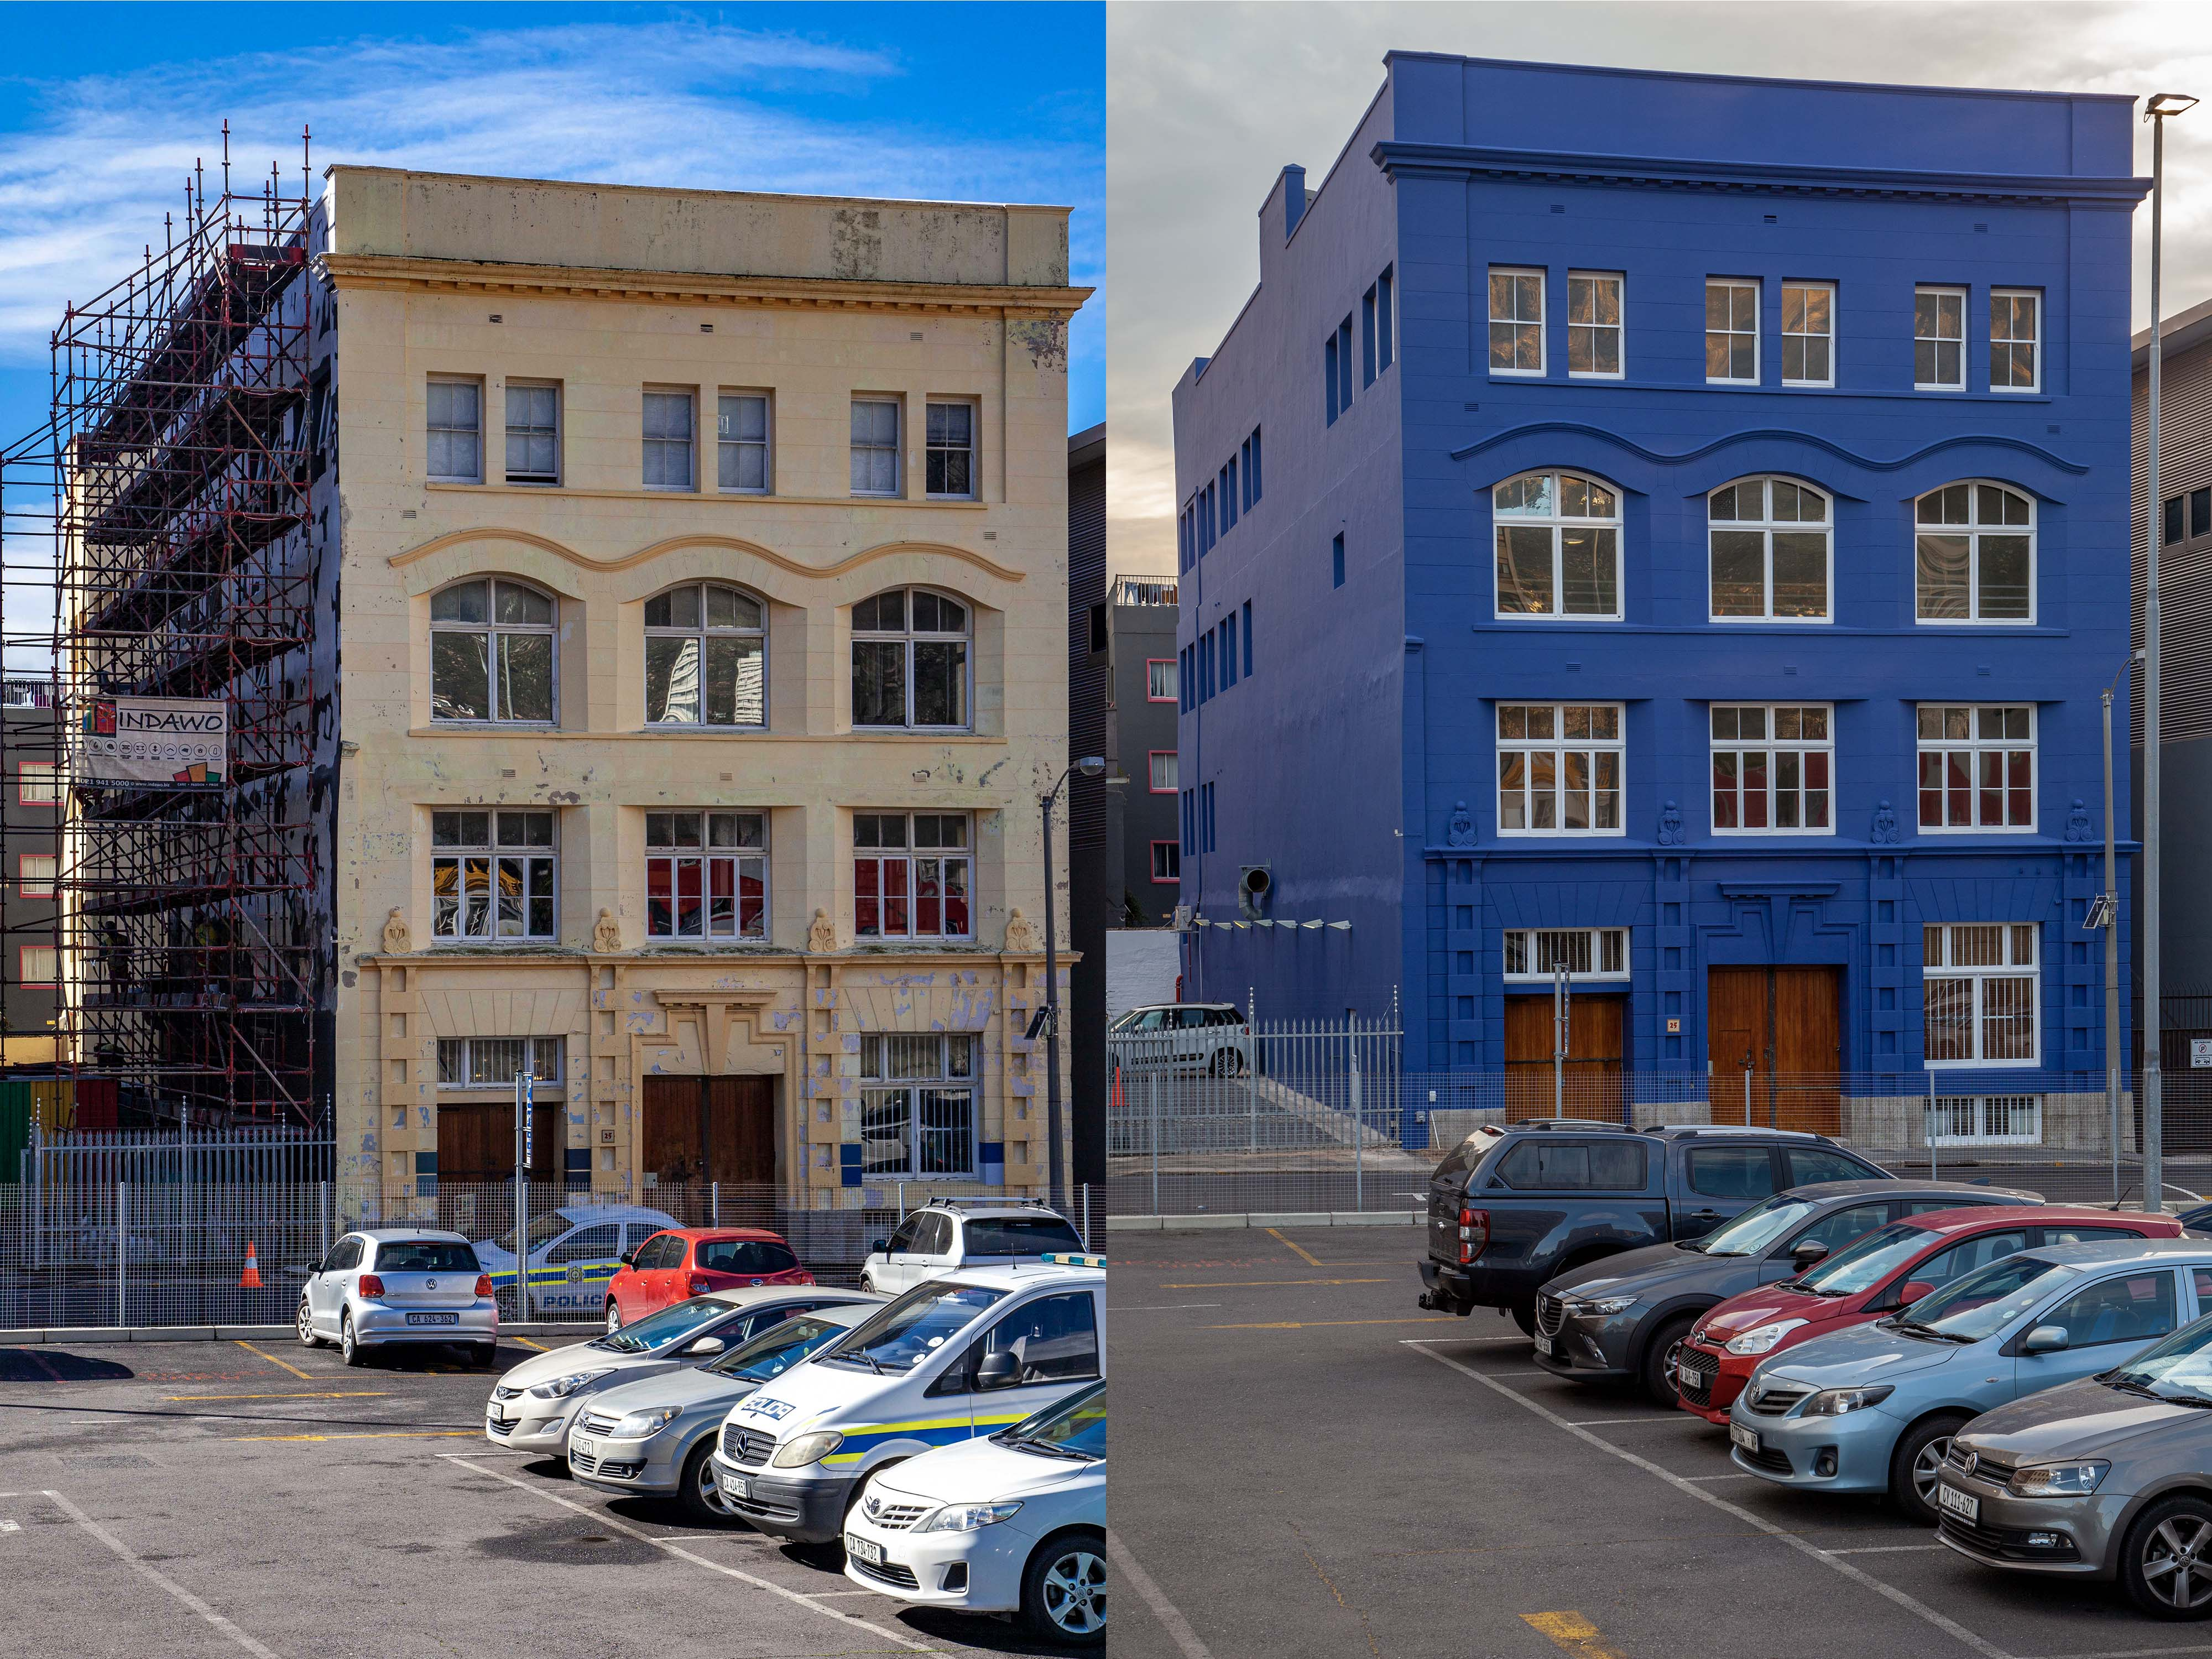 UNION HOUSE BEFORE AND AFTER